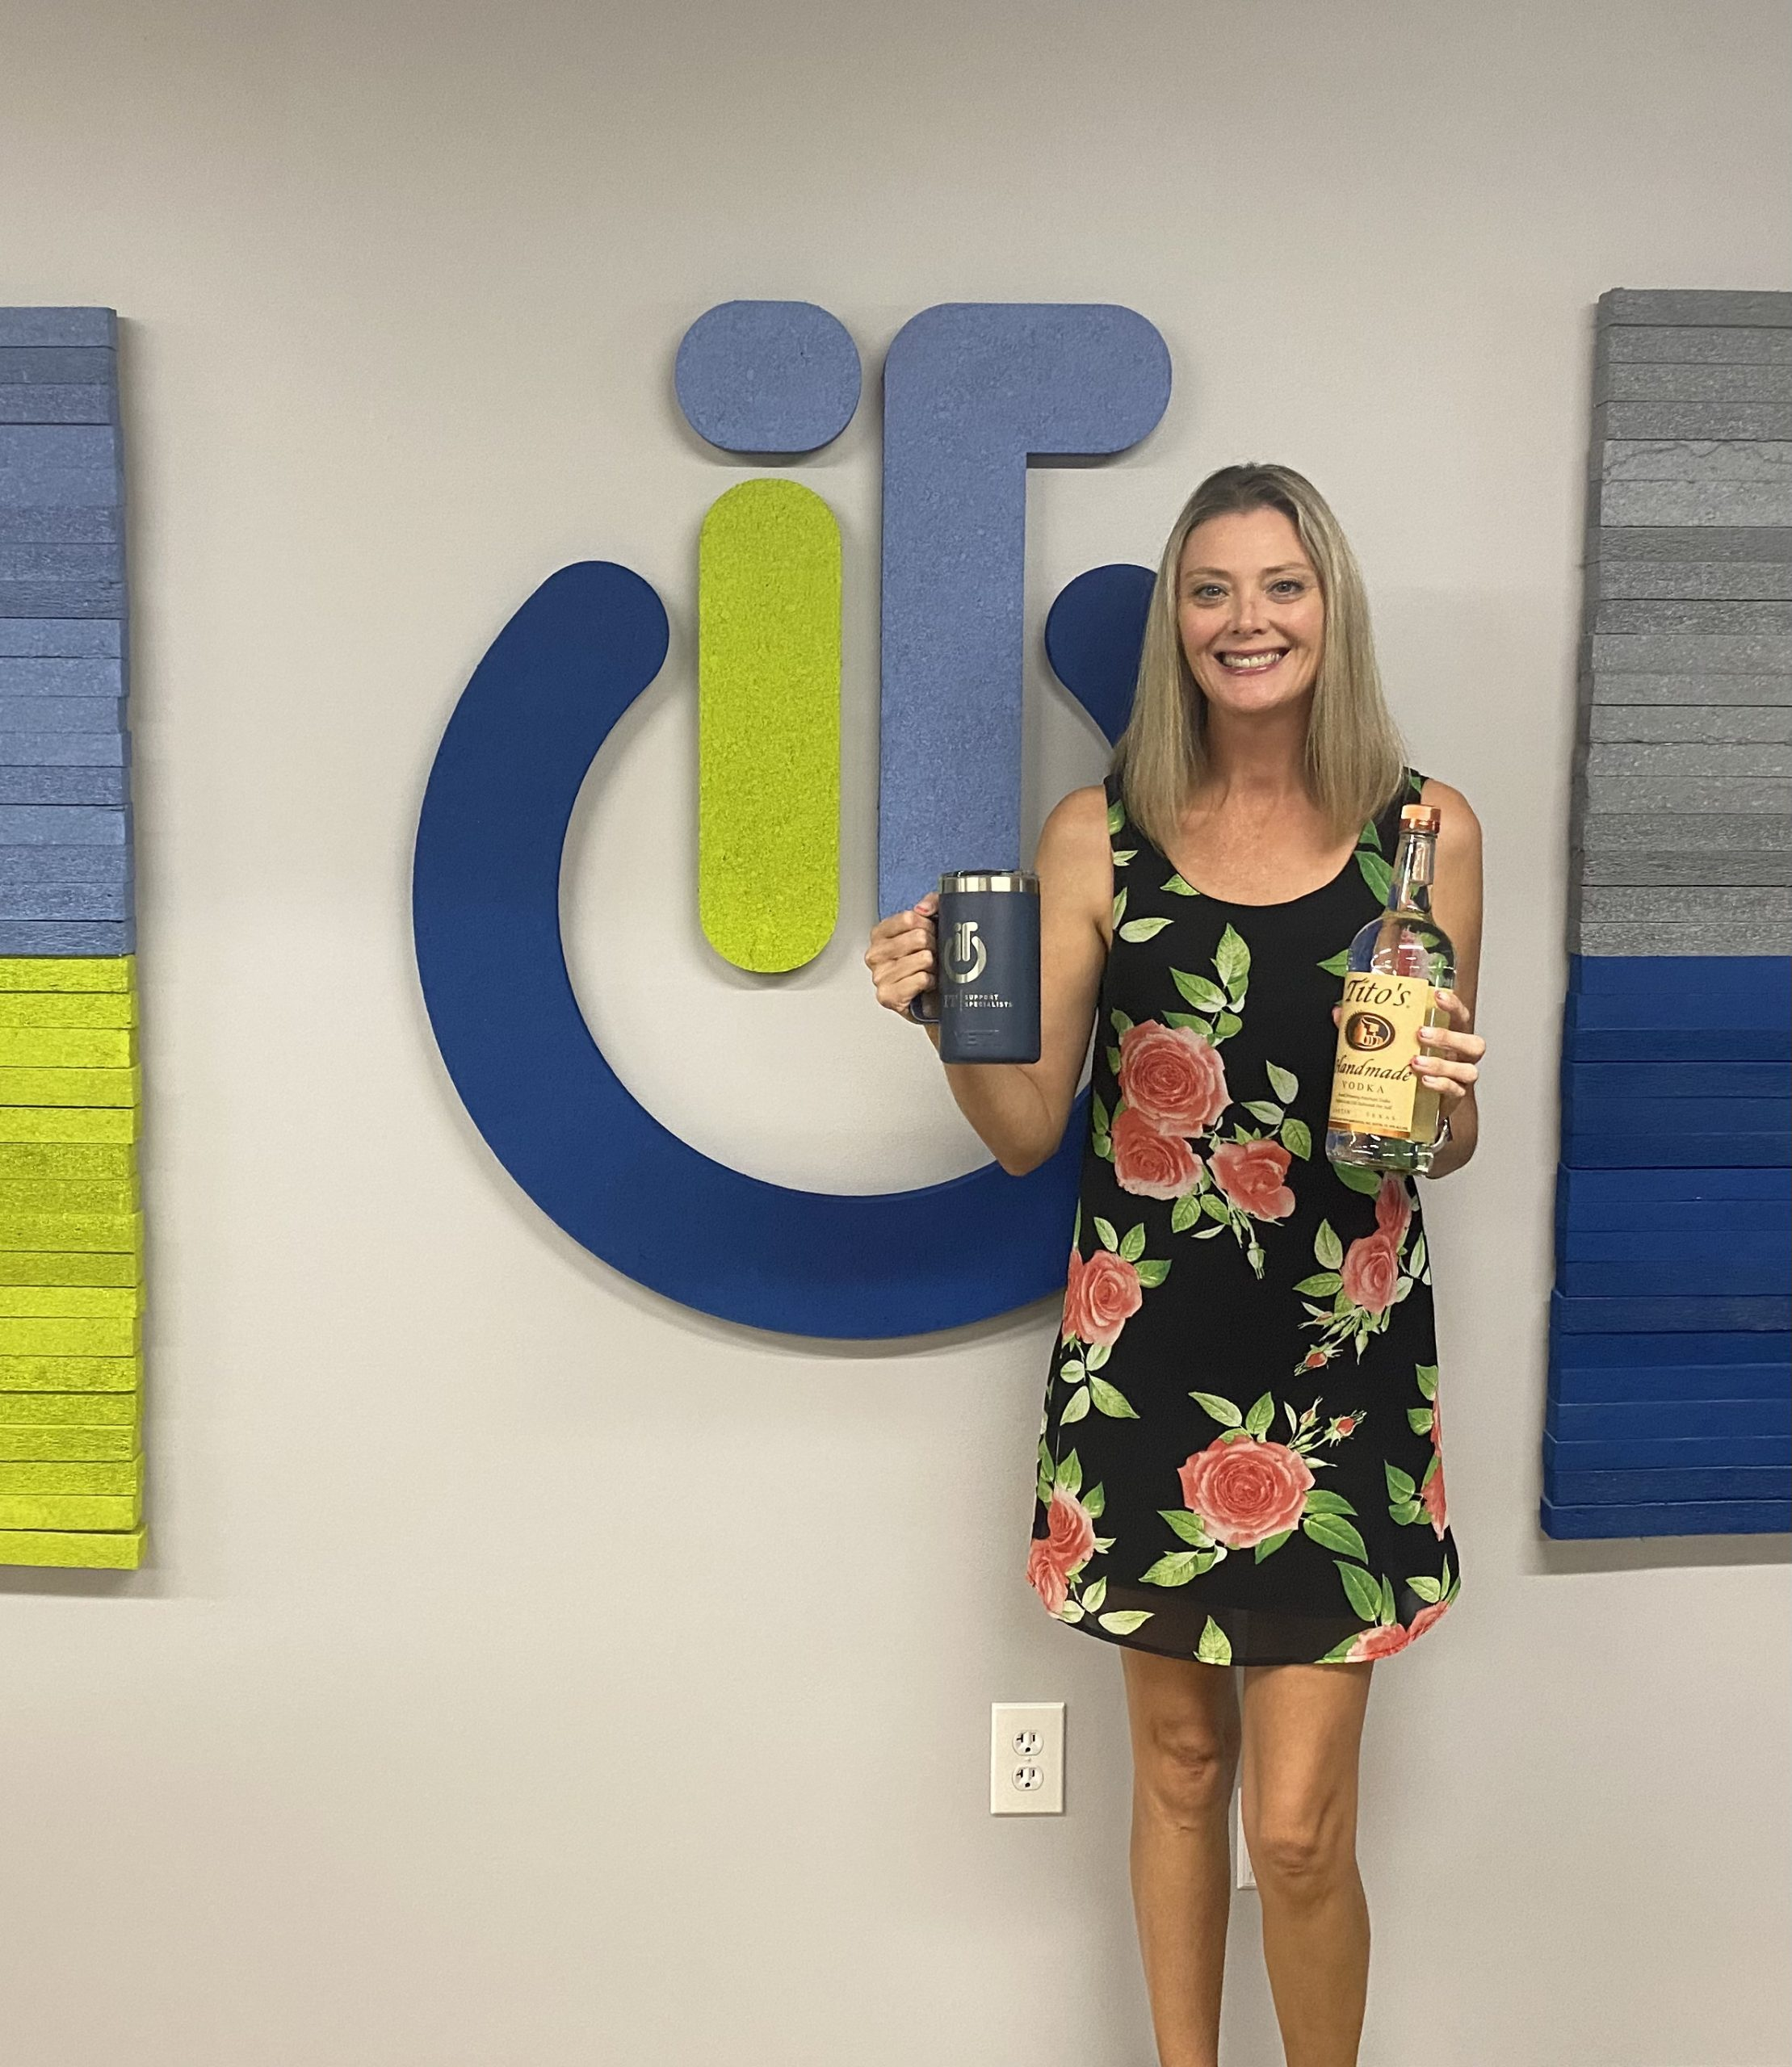 It's time to get ready for the North Olmsted Chamber Golf Outing! You'll find this Brand Ambassador representing IT Support Specialists Berea. Who's ready to win some Tito's and a Yeti?!